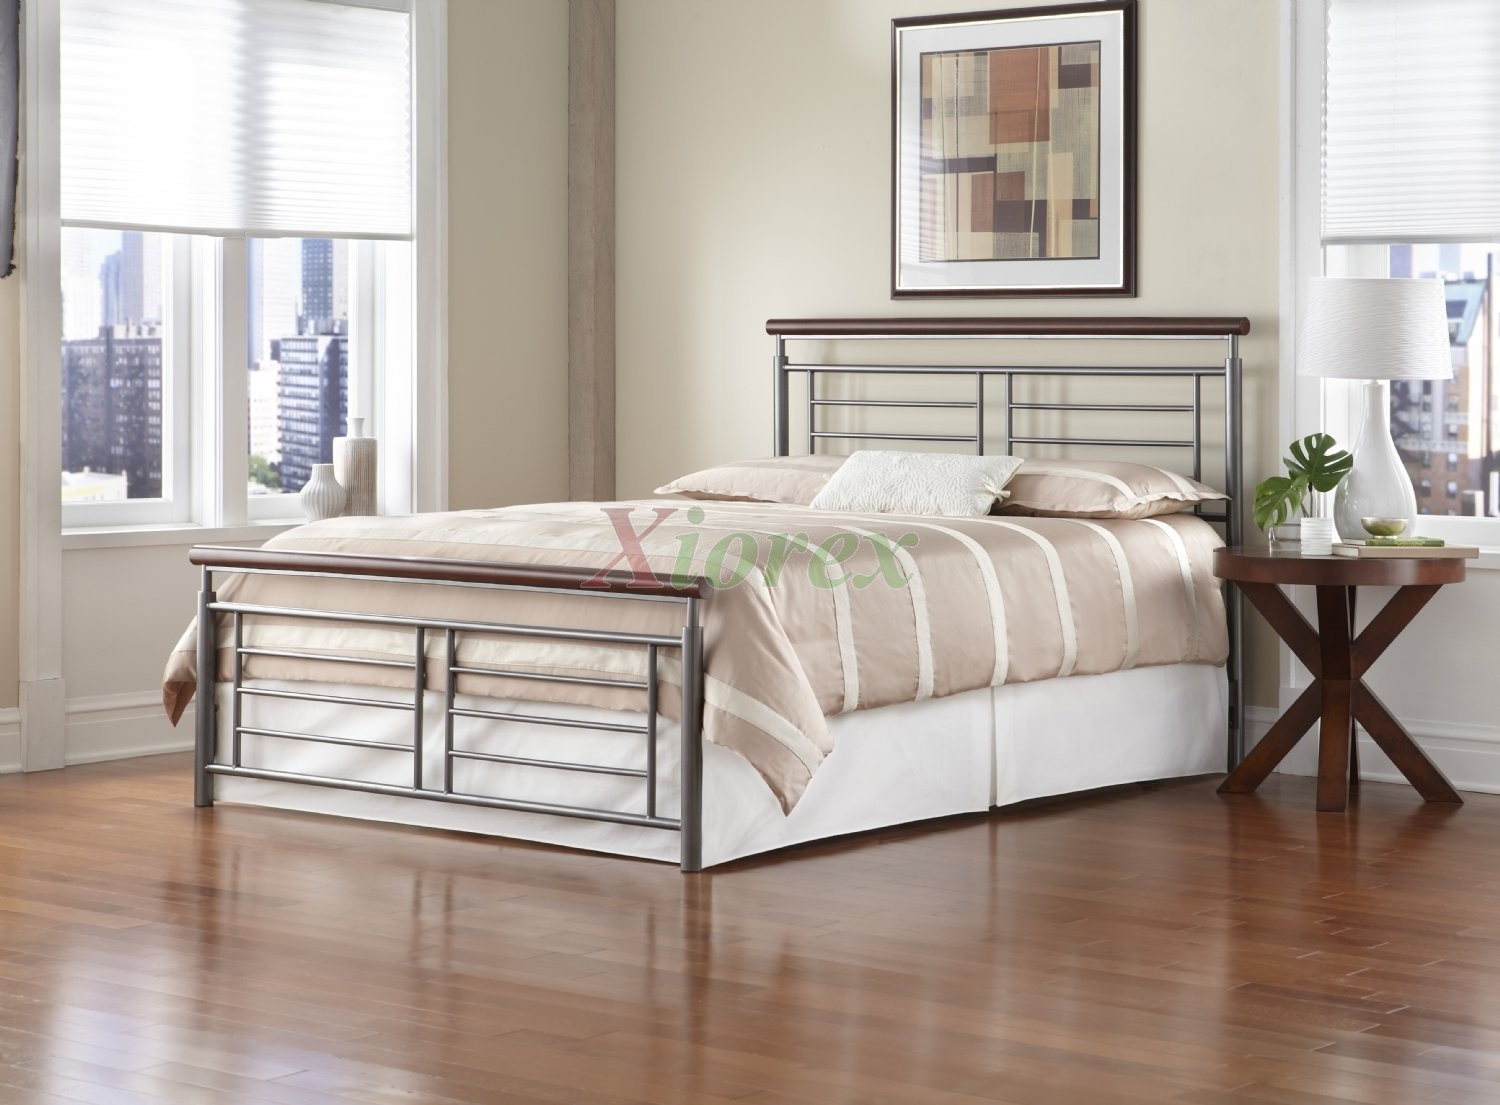 Fontane Bed W Cherry MetalSilver Finish By Fashion Bed Group Xiorex - Fashion bedroom furniture